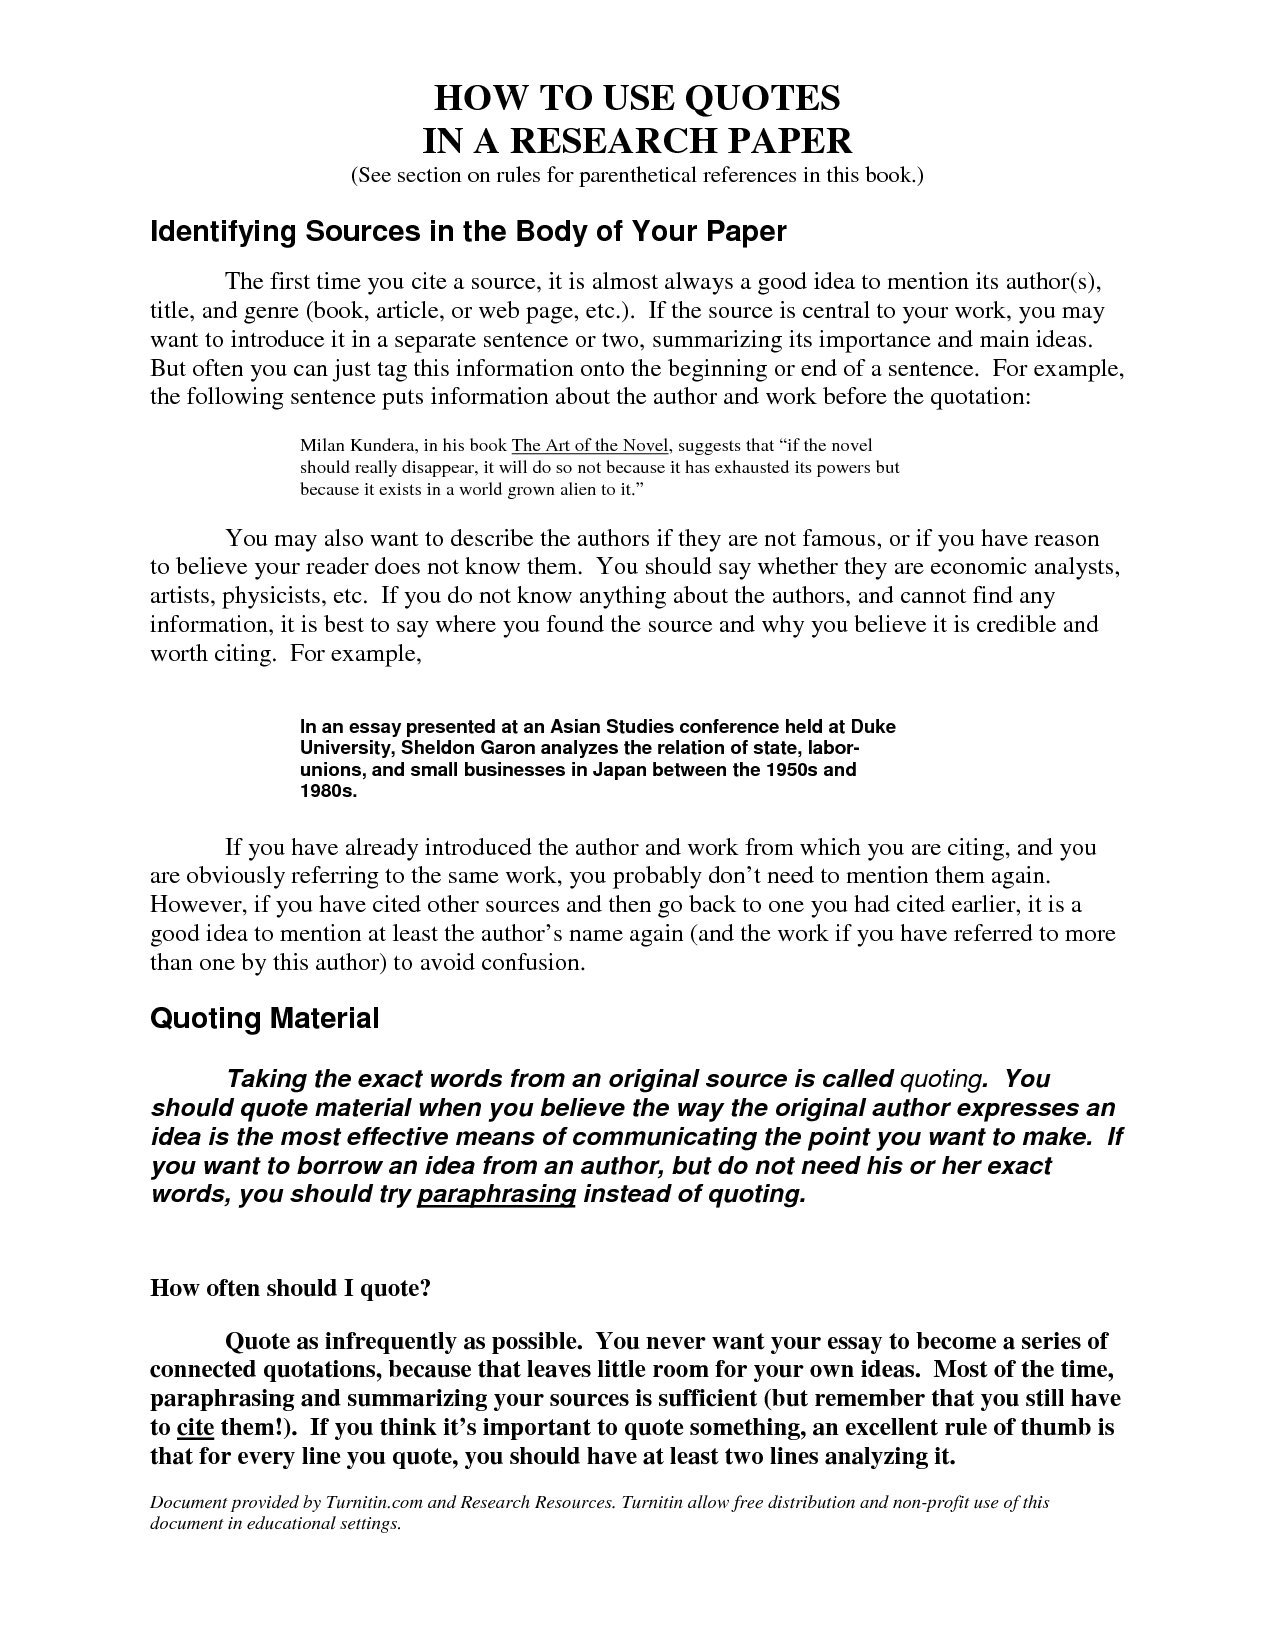 Corporate characteristics proposal essay